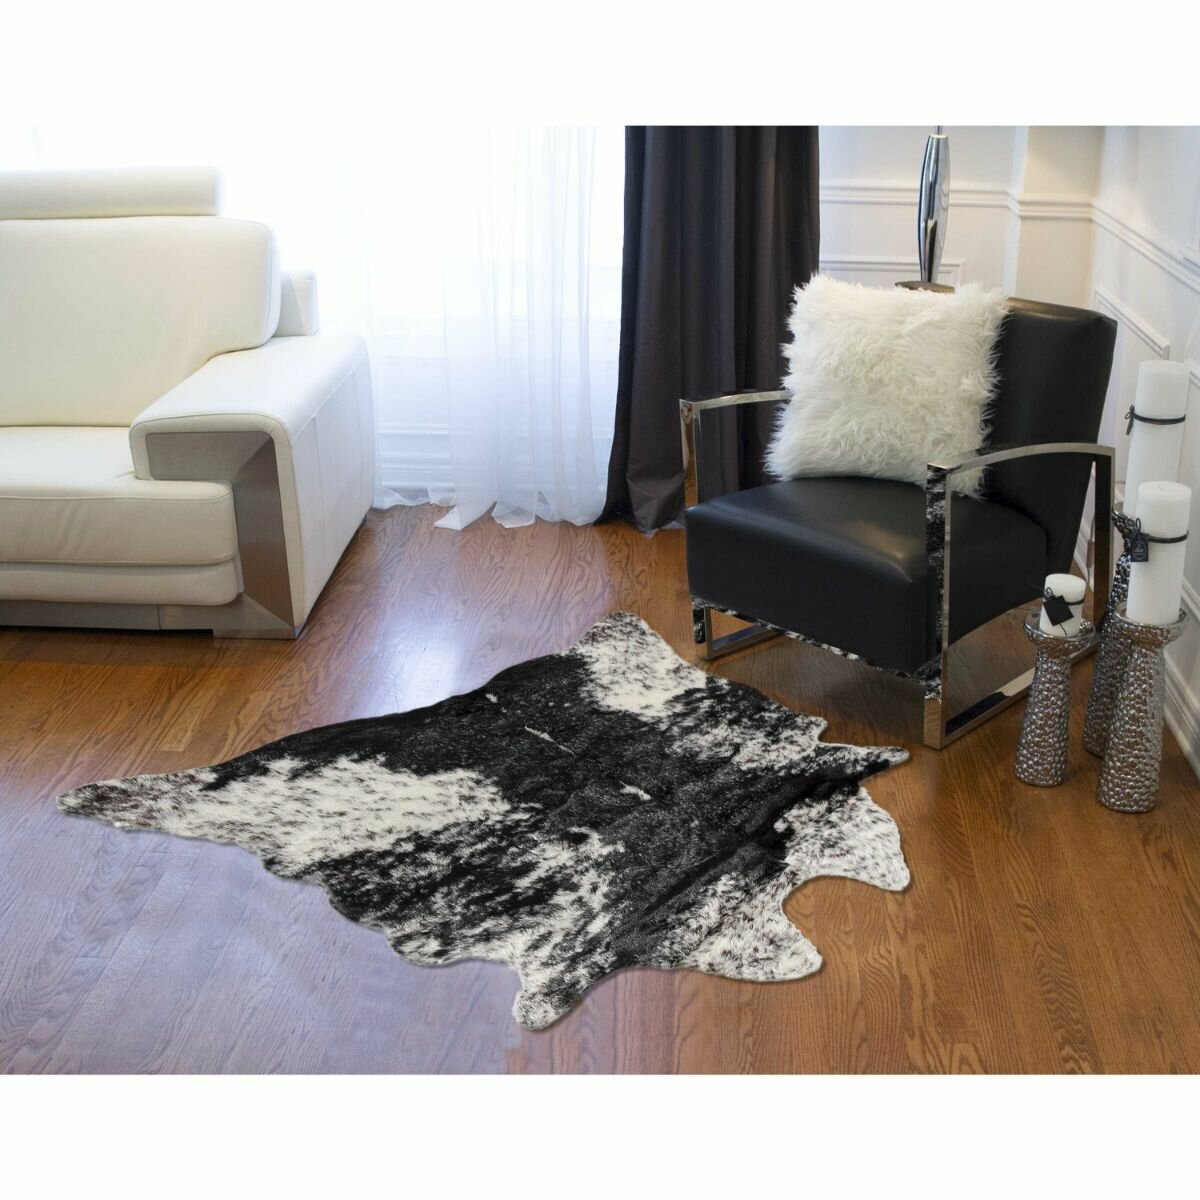 Loon Peak Embrey Animal Print Handmade Cowhide Black White Area Rug Wayfair